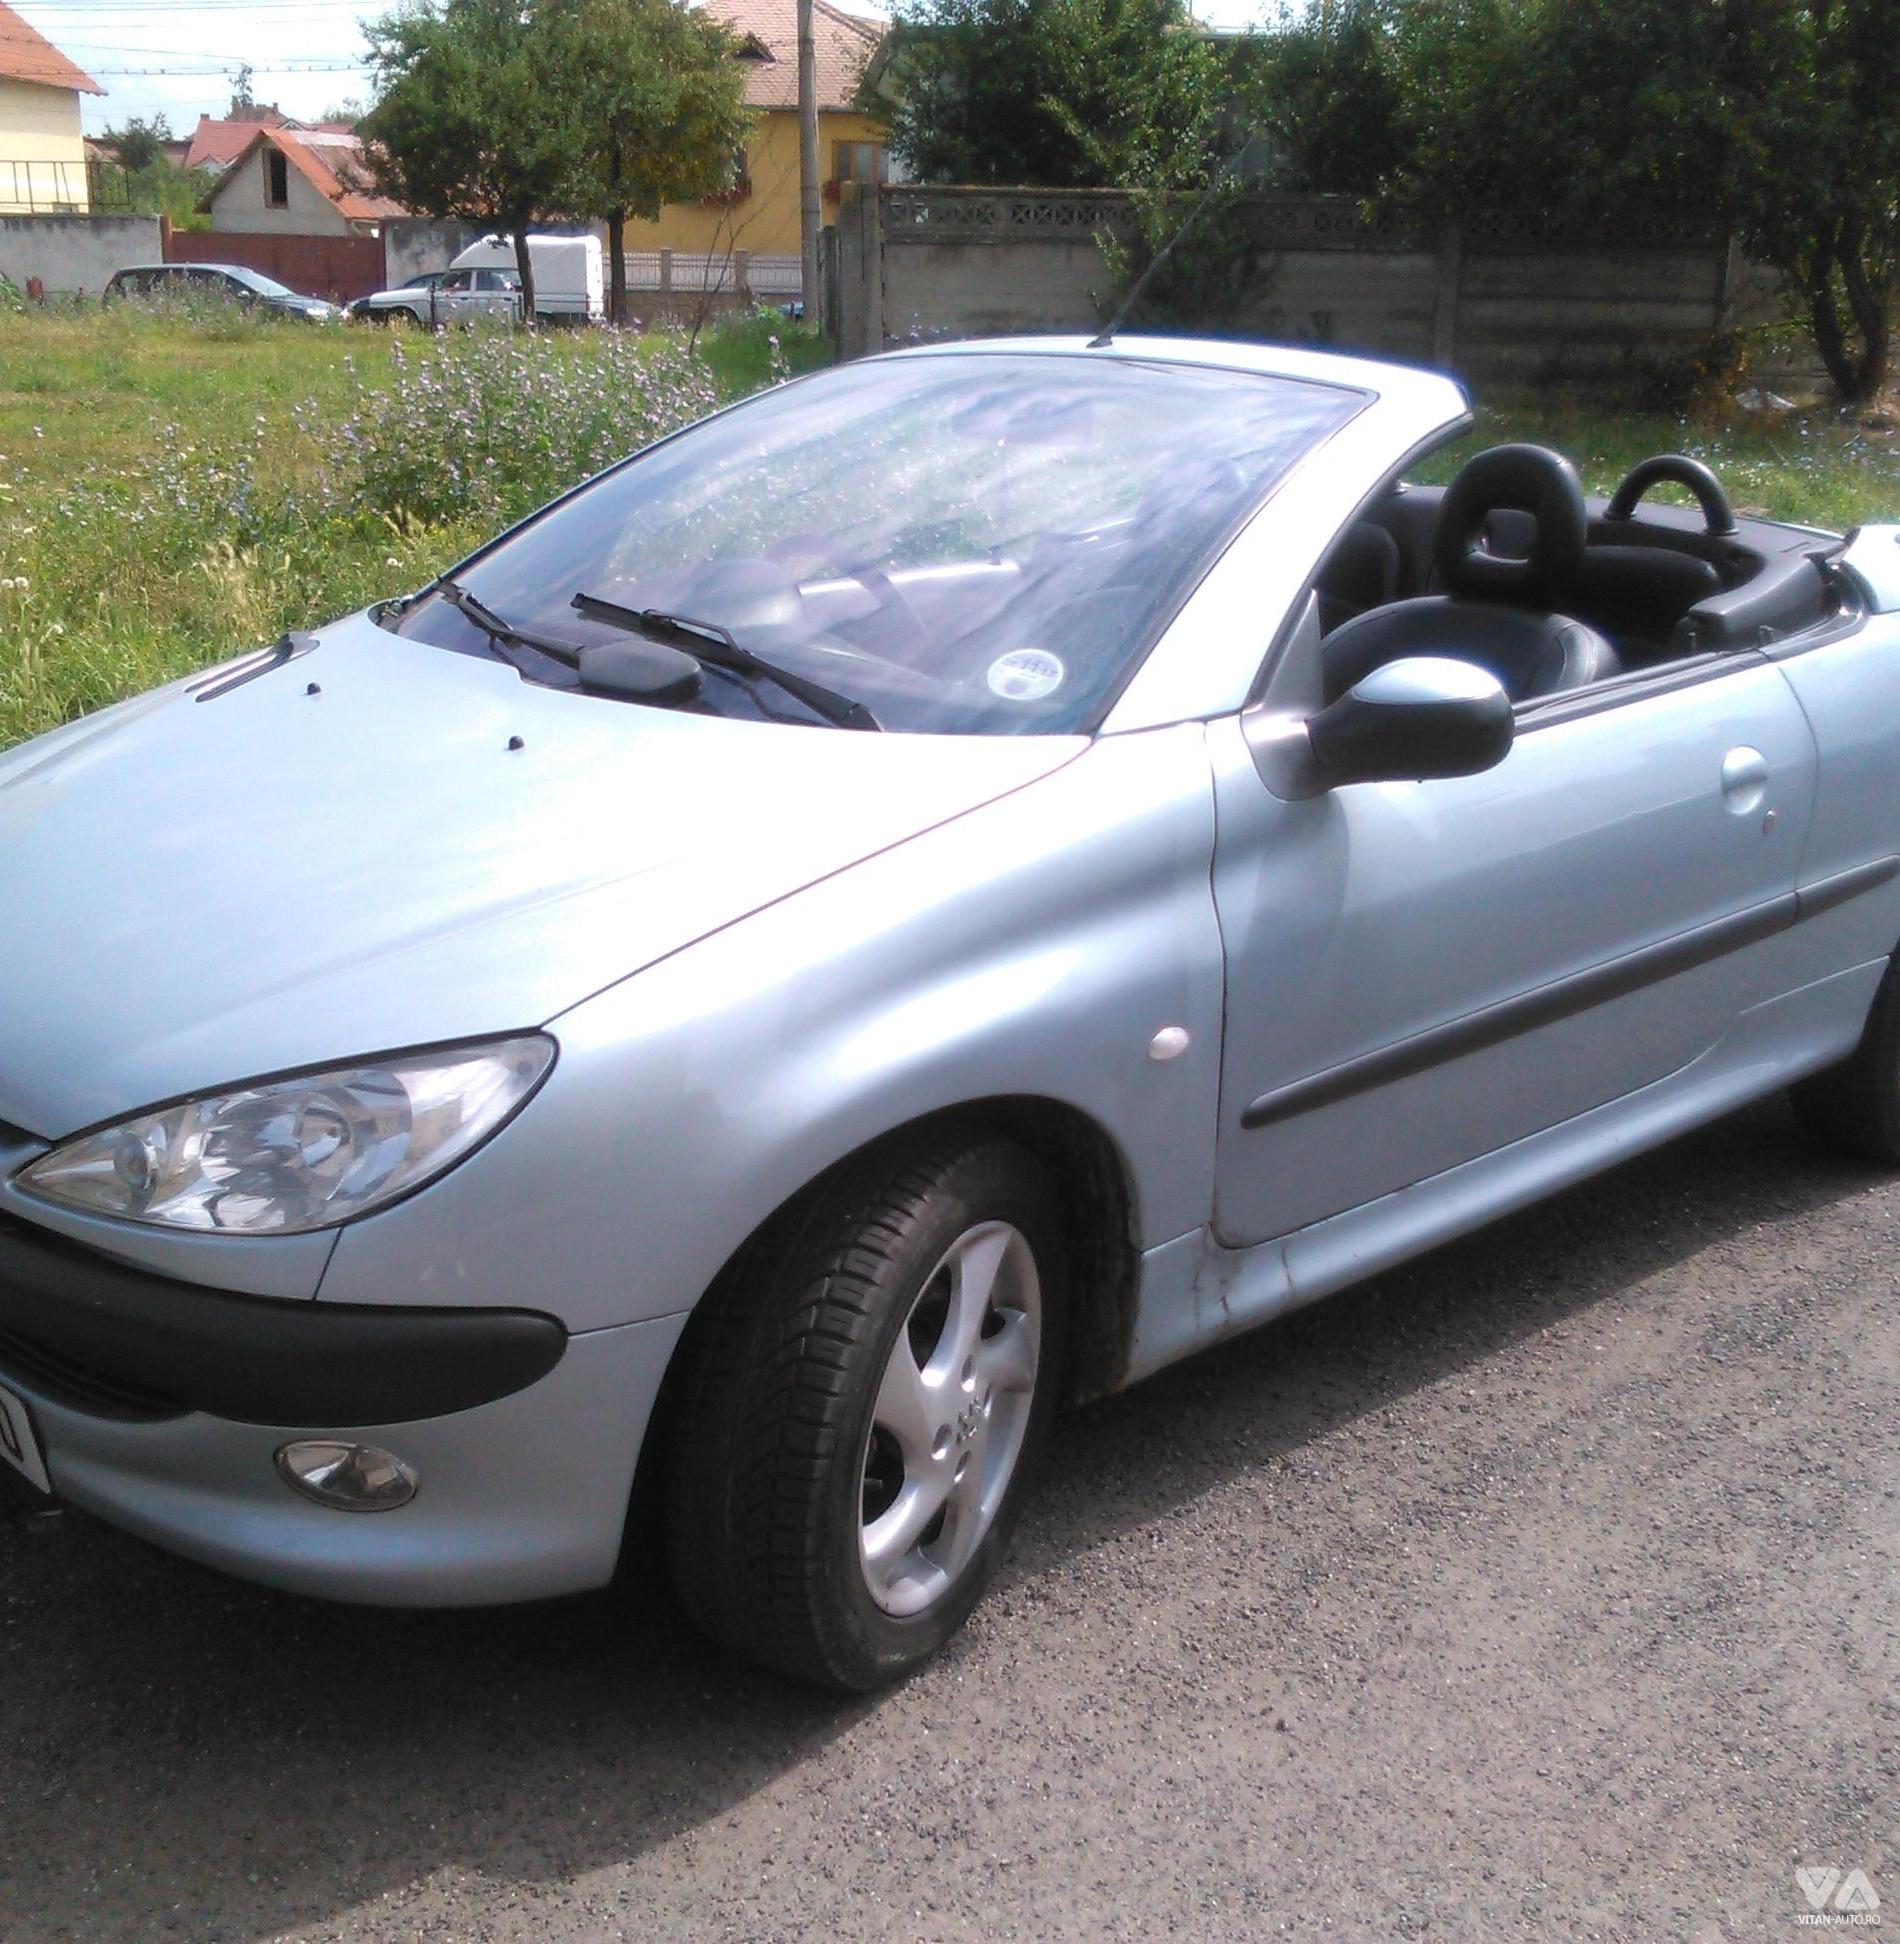 vanzare peugeot 206 cc din 2001 1400 eur in sibiu. Black Bedroom Furniture Sets. Home Design Ideas